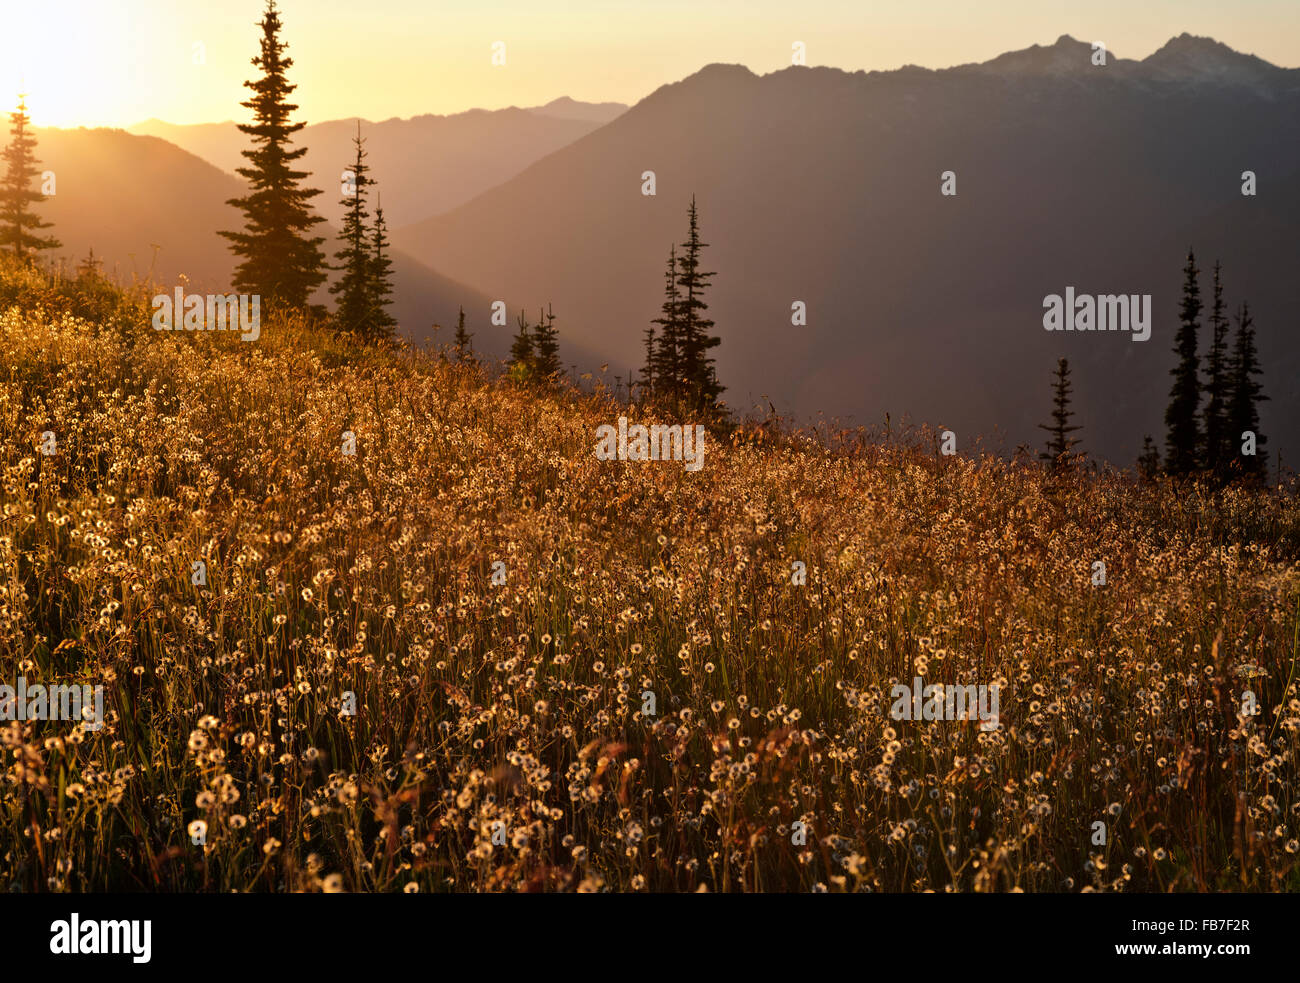 WASHINGTON  - The setting sun lighting up a field of flowers that had gone to seed on Flower Dome in Glacier Peak - Stock Image